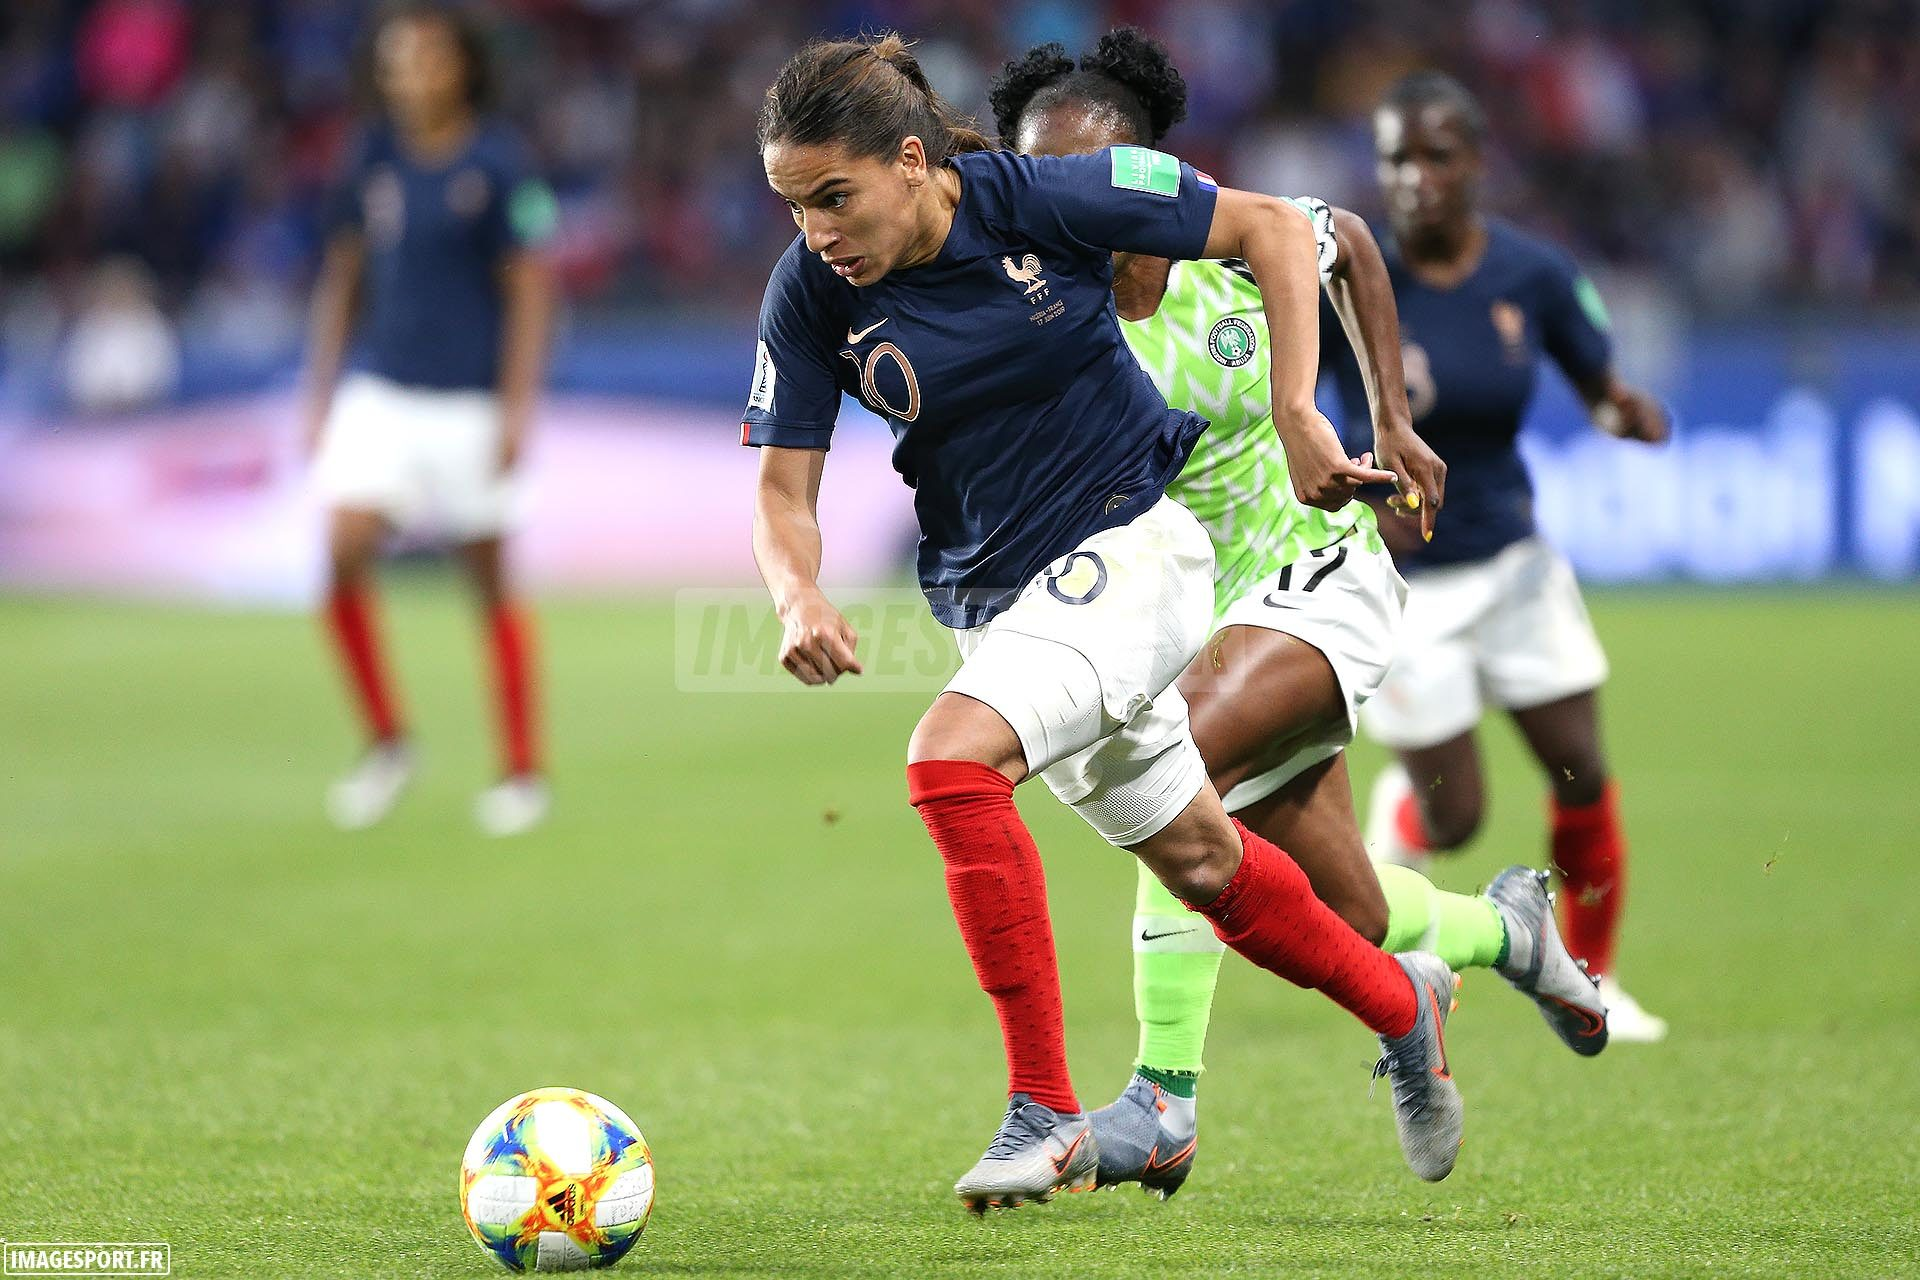 coupe-du-monde-19-nigeria-france_14